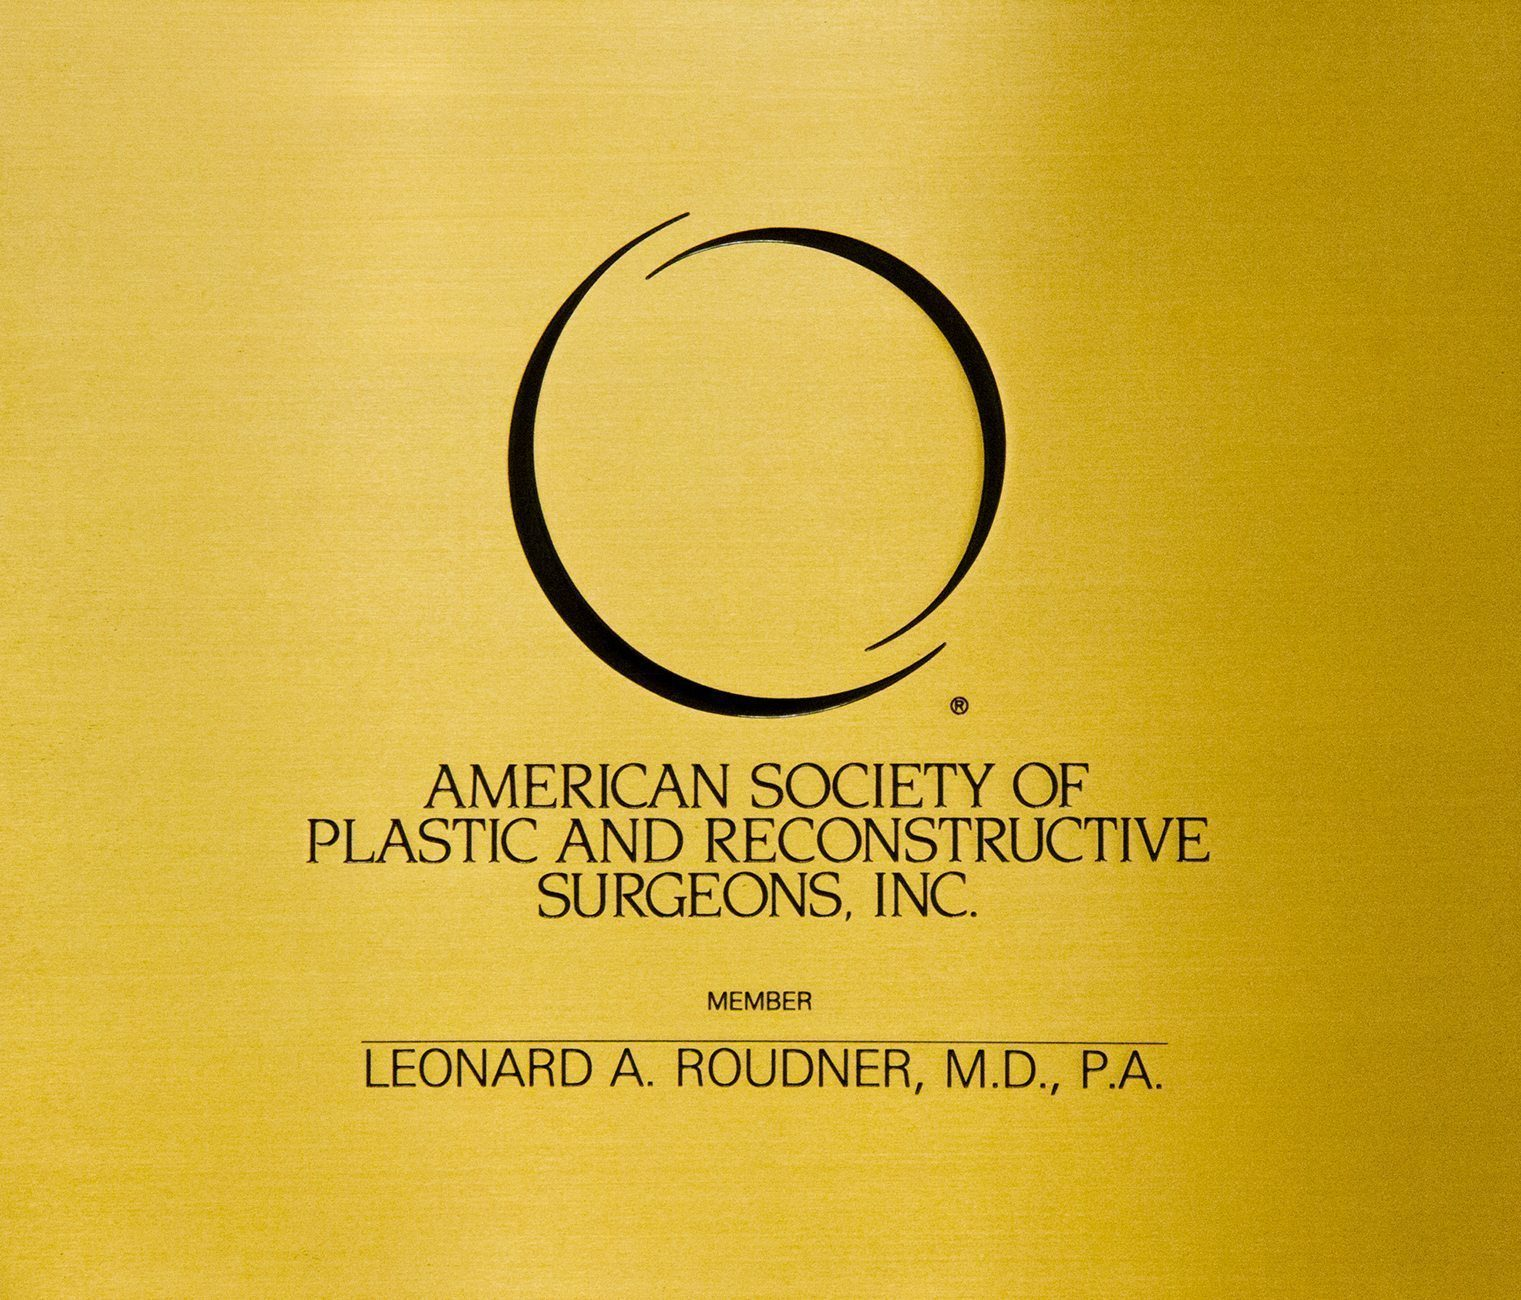 Member of the American Society of Plastic and Reconstructive Surgeons